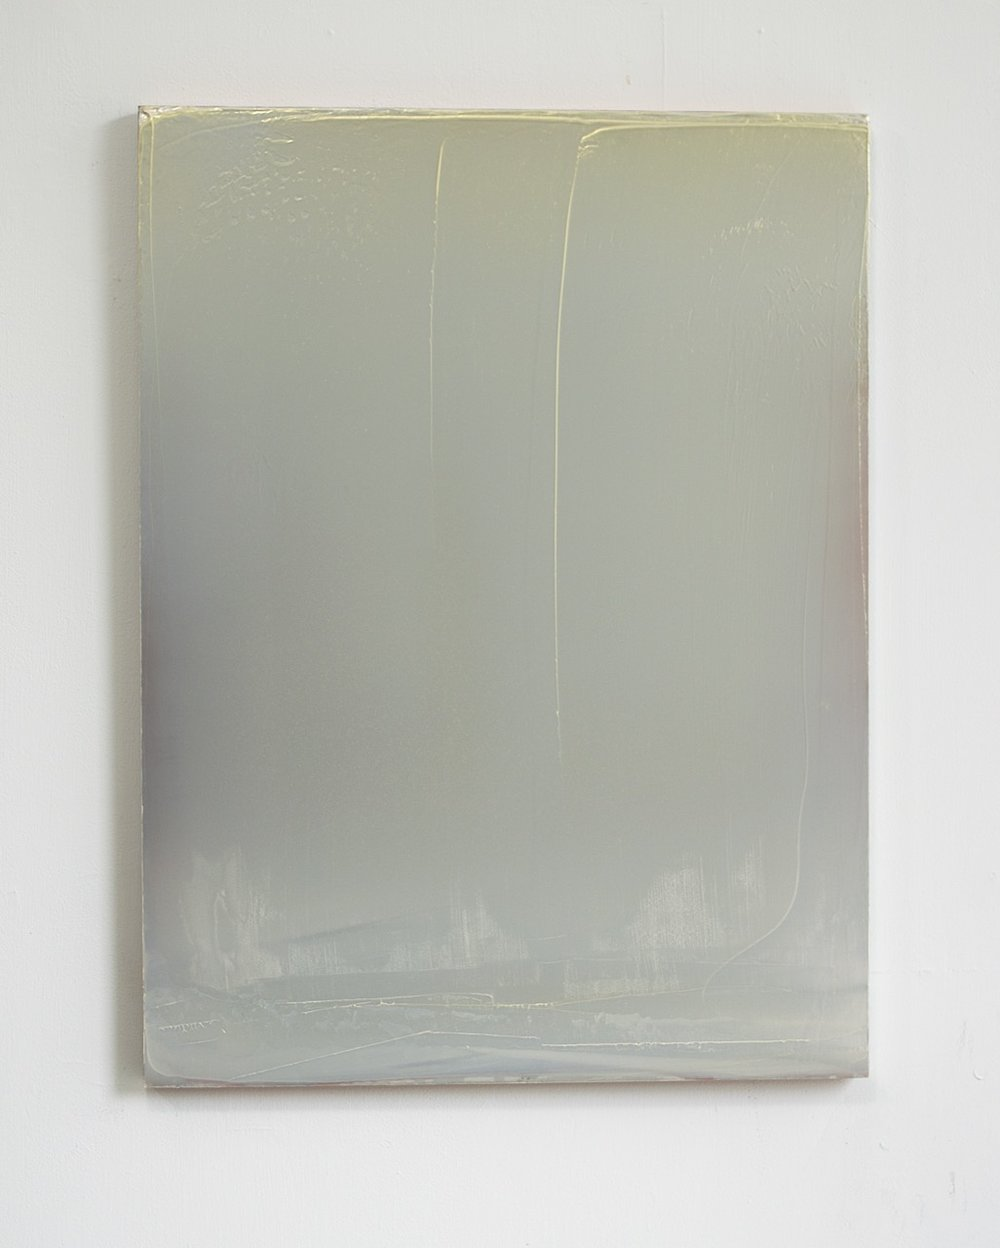 Untitled Gold over White, 2015, 60x45cm.jpg